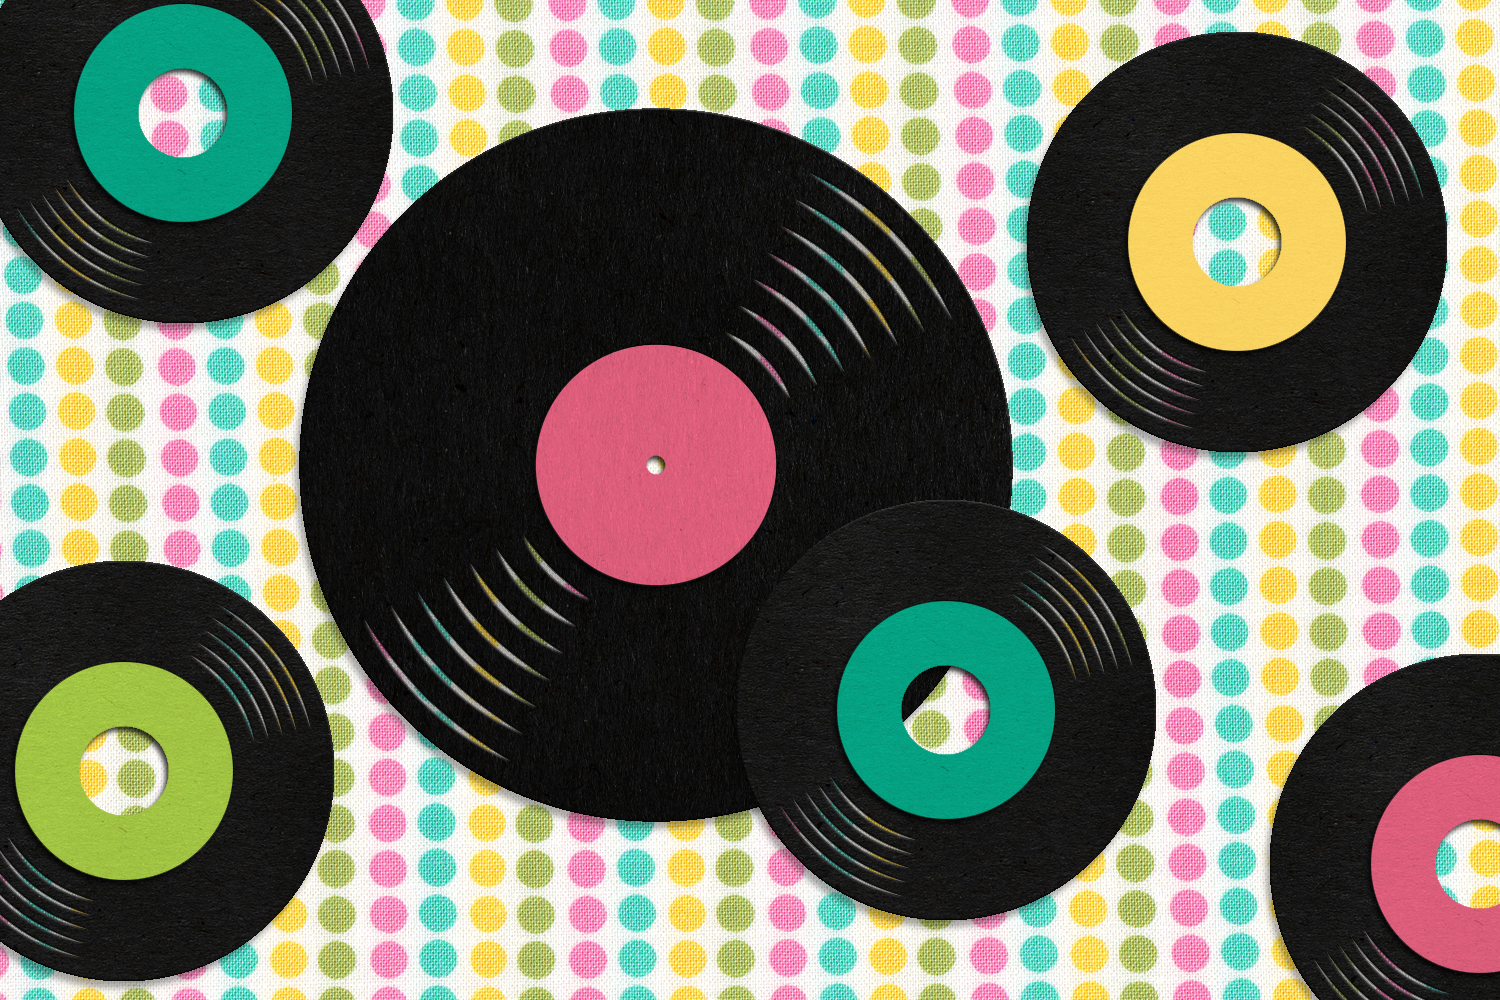 LP Album and 45 Record SVG File Cutting Template example image 1